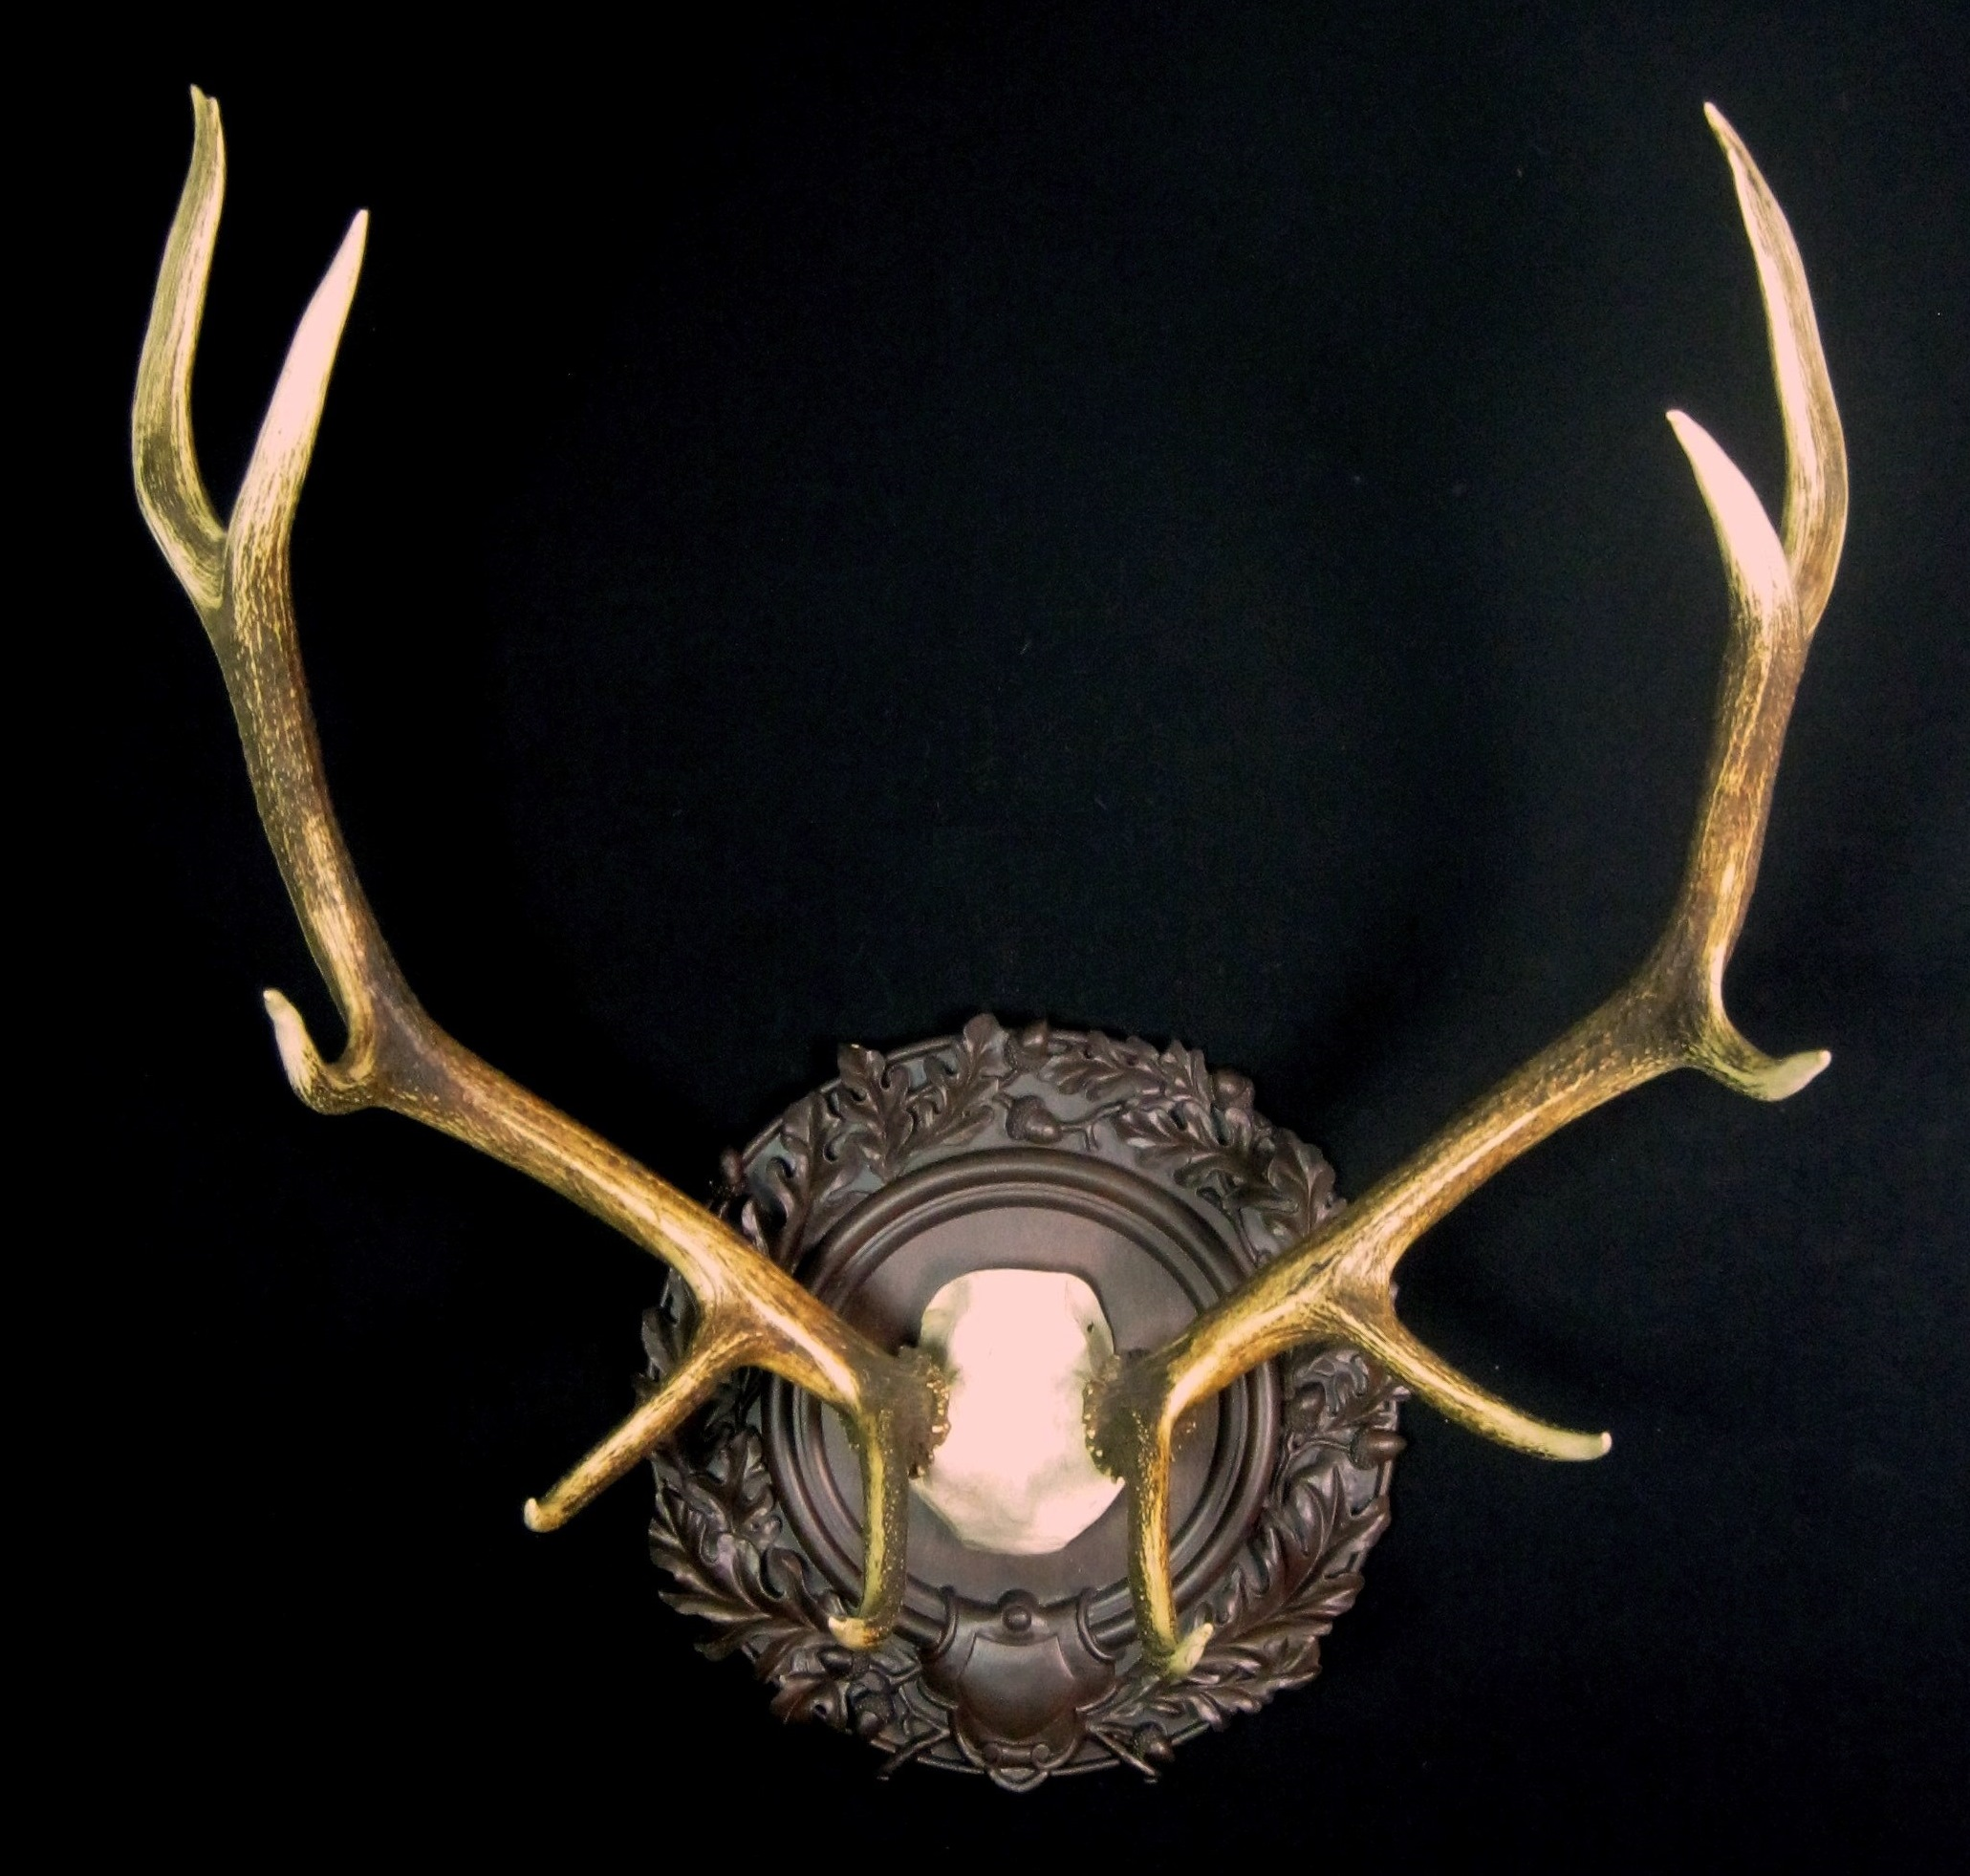 Beautiful elk antlers mounted in classic old world style, surrounded by ornate oak leaves and acorns.